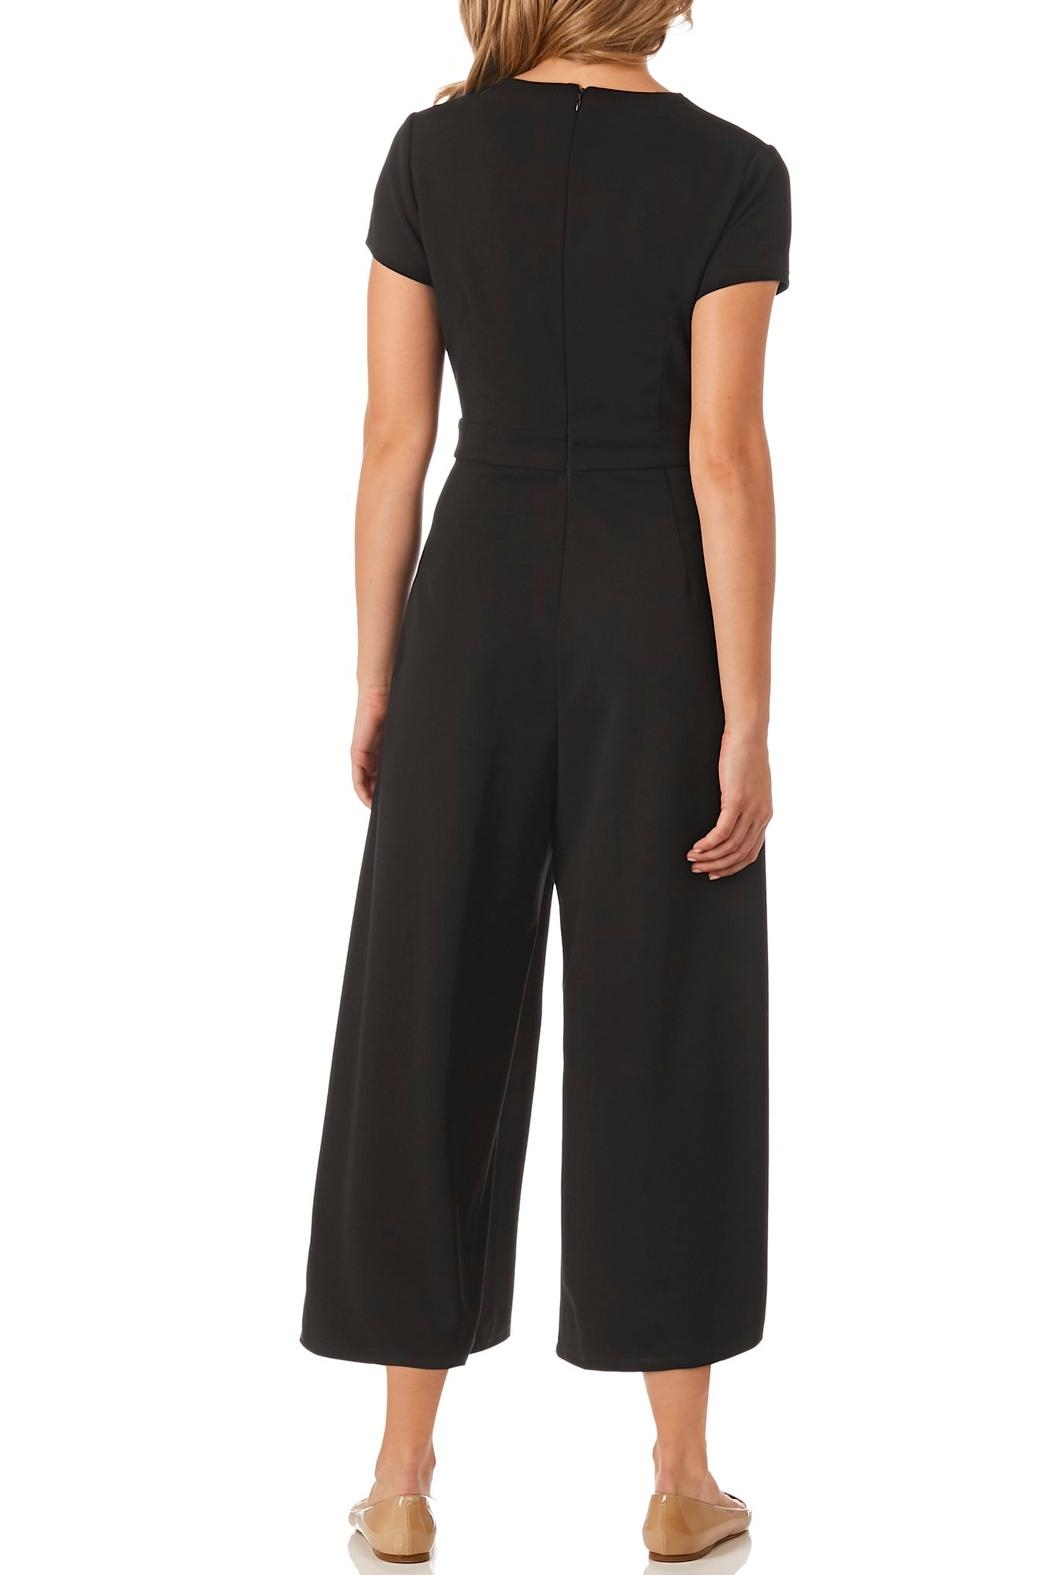 Jude Connally Blaire Stretch-Crepe Jumpsuit - Front Full Image